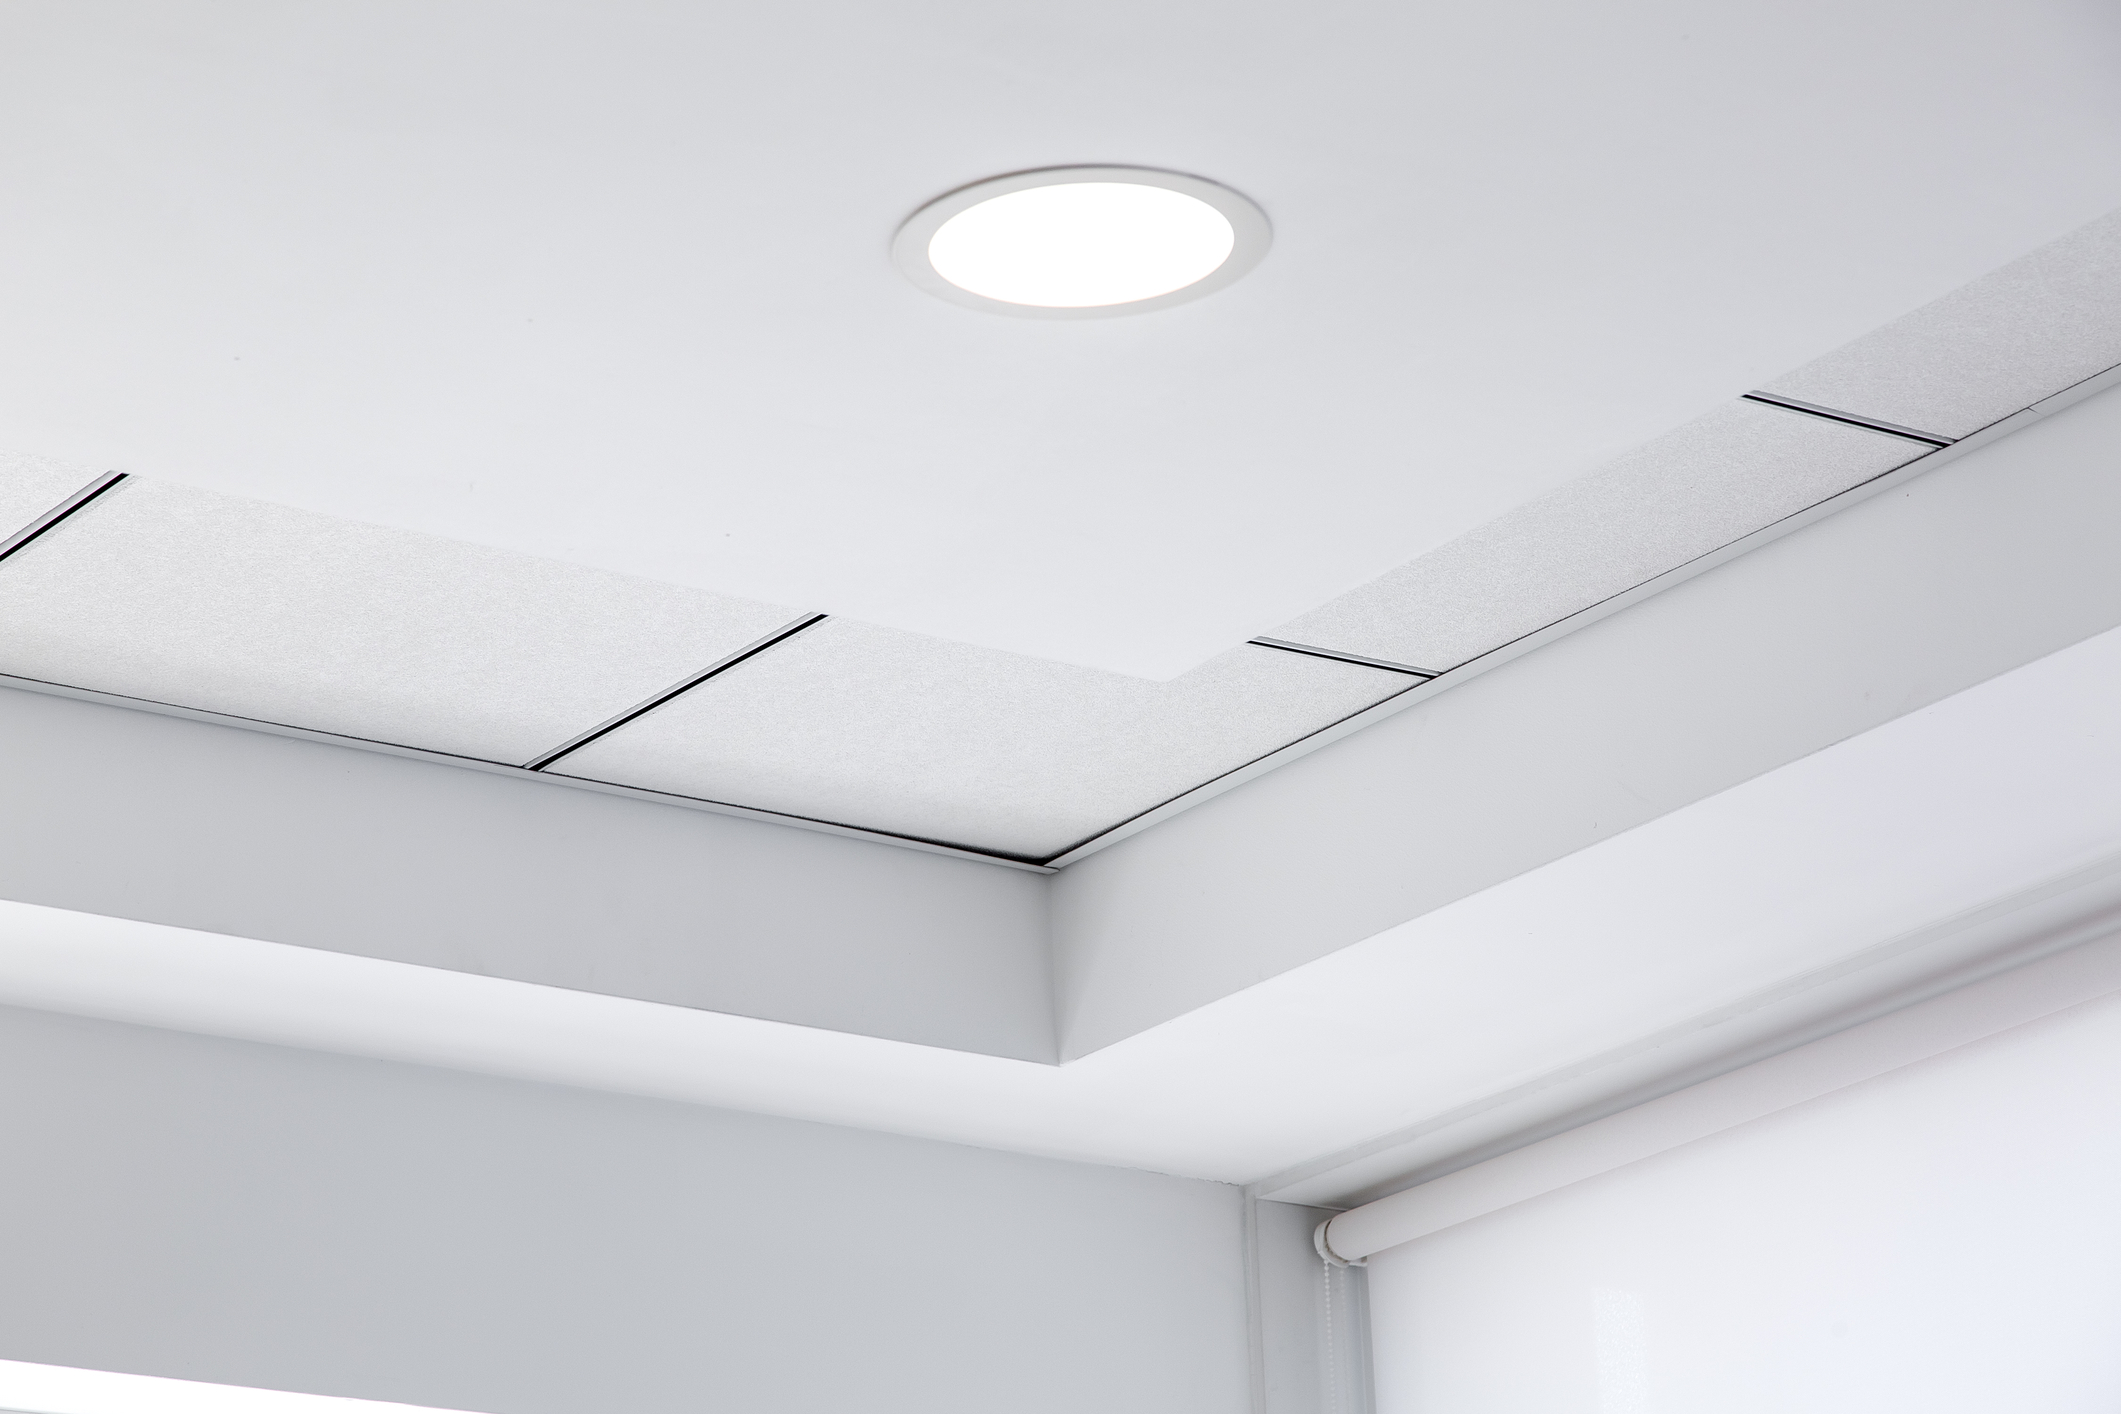 Stretch Ceilings Kildare | Kehoe Suspended Ceilings